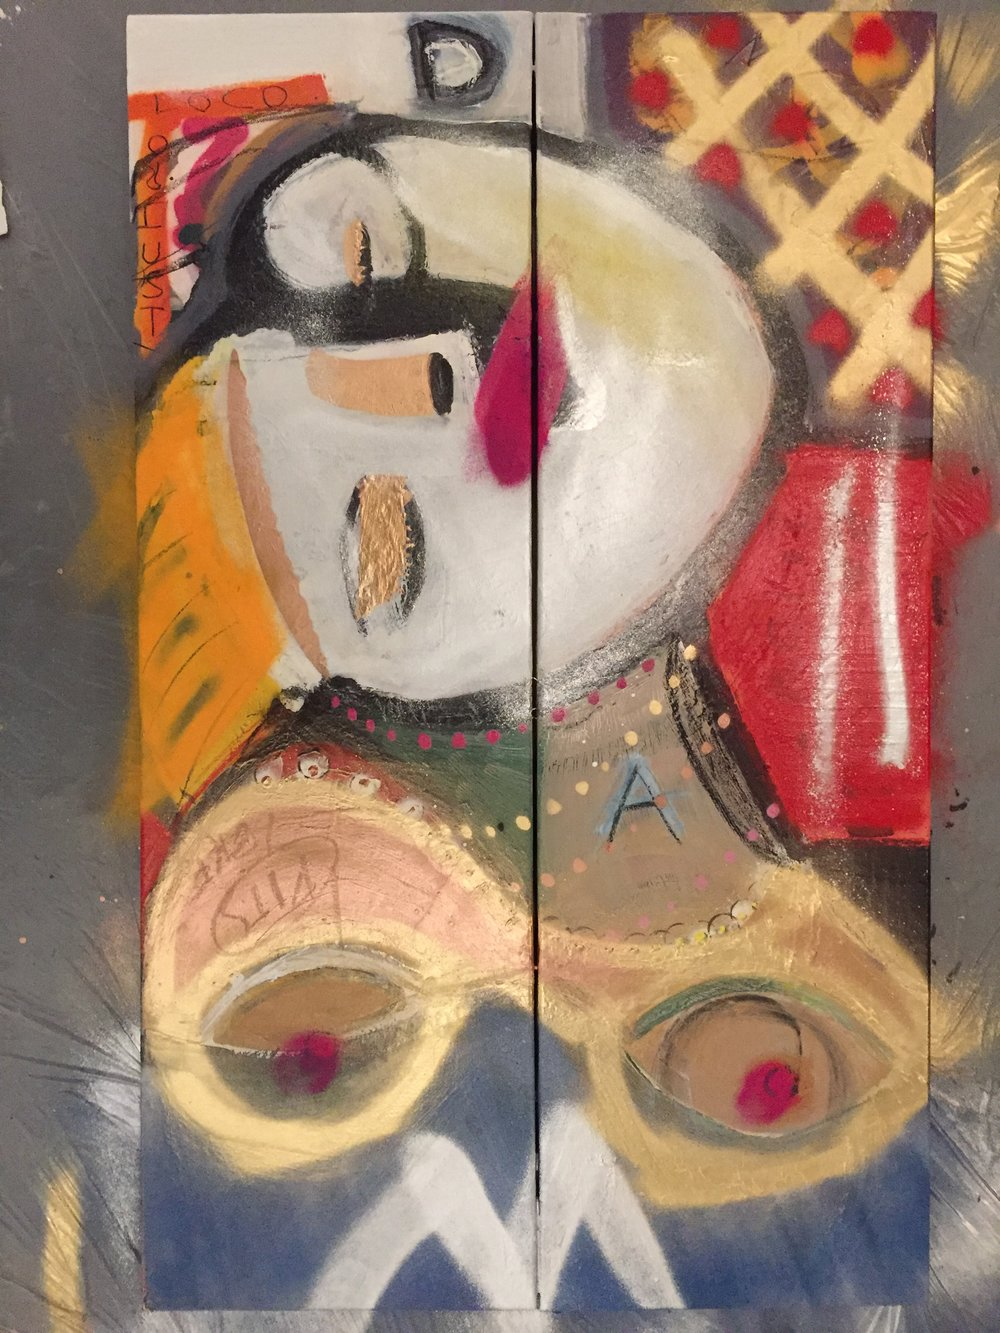 Bad Dreams  - Pigsy Kemp Collaboration2: 300mm x 900mmDiptych - Mixed Media on Canvas